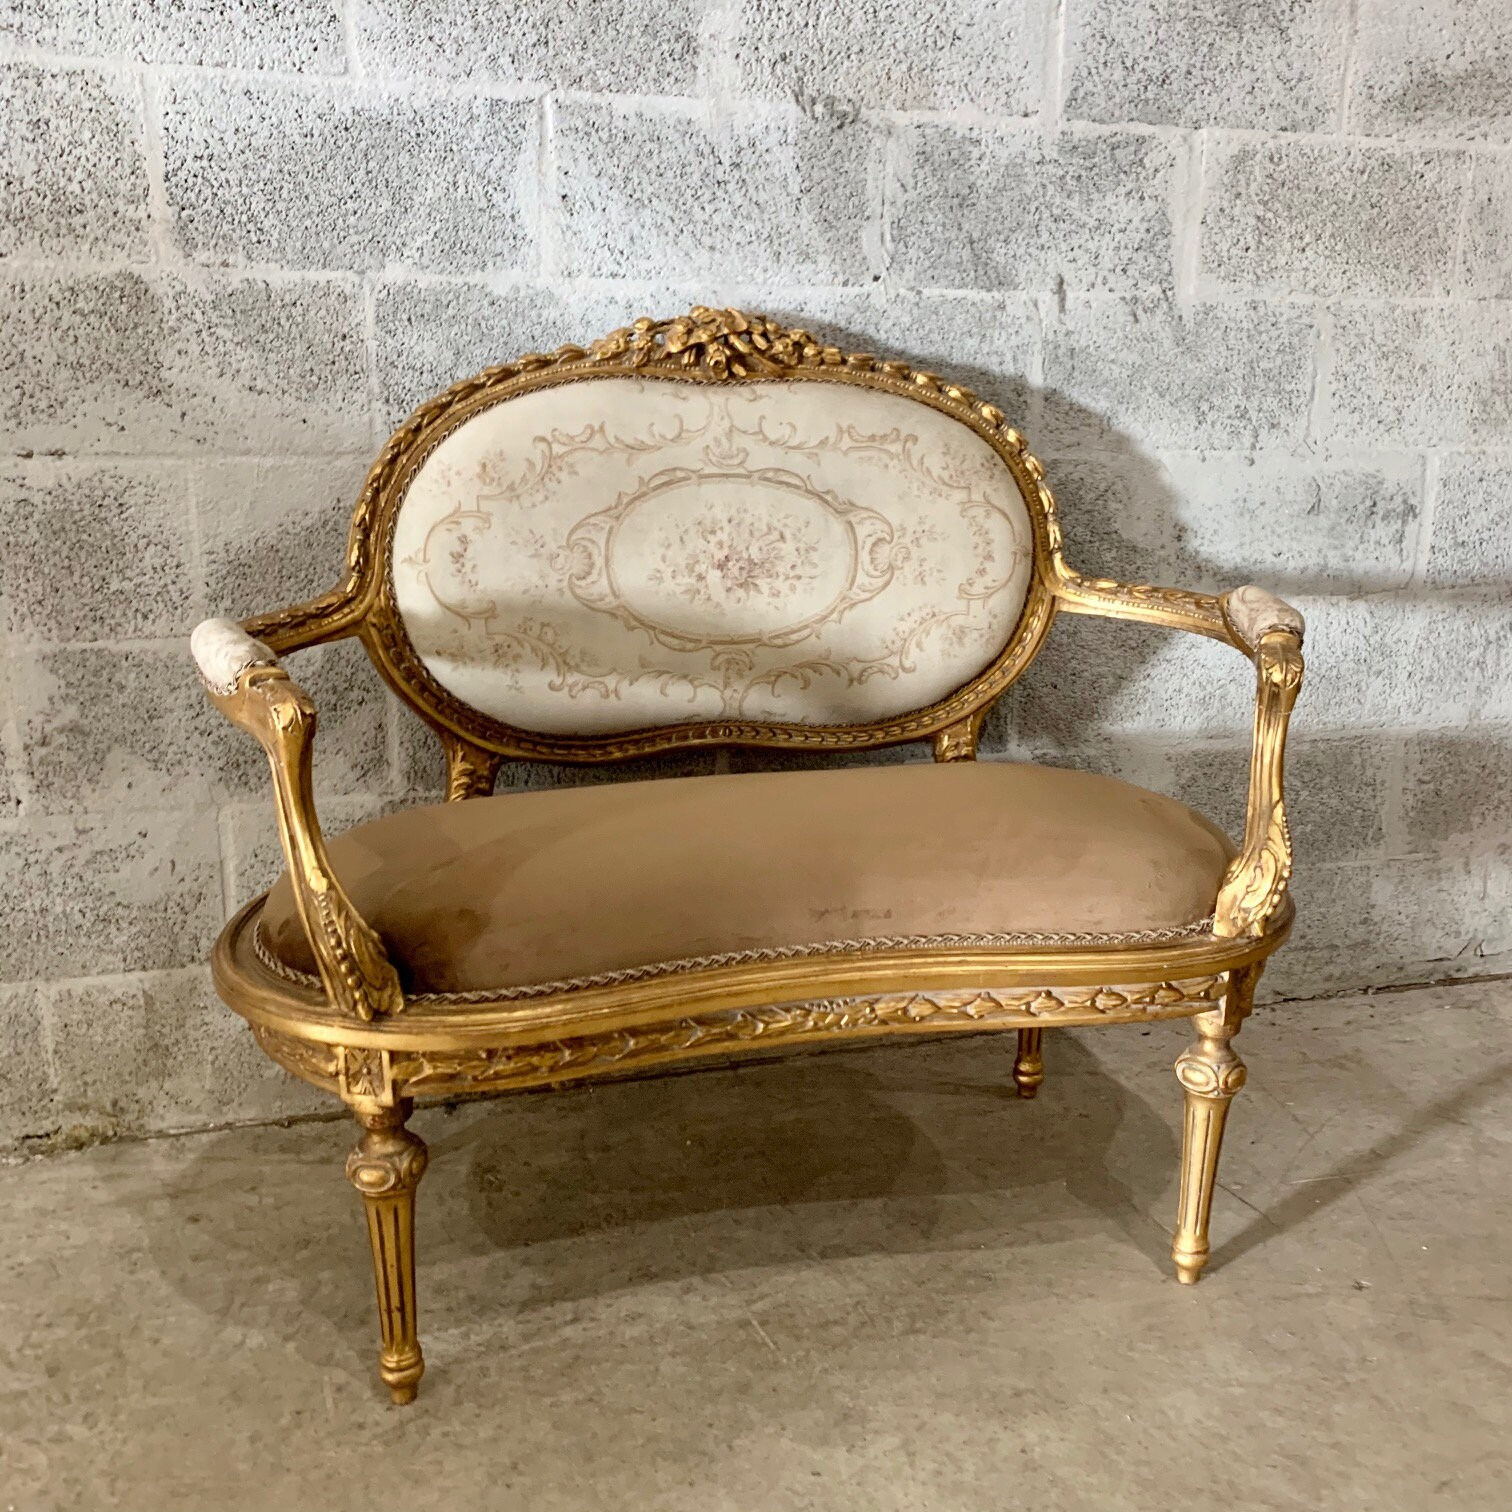 Astonishing French Marquise French Sofa Furniture Baroque Furniture Evergreenethics Interior Chair Design Evergreenethicsorg